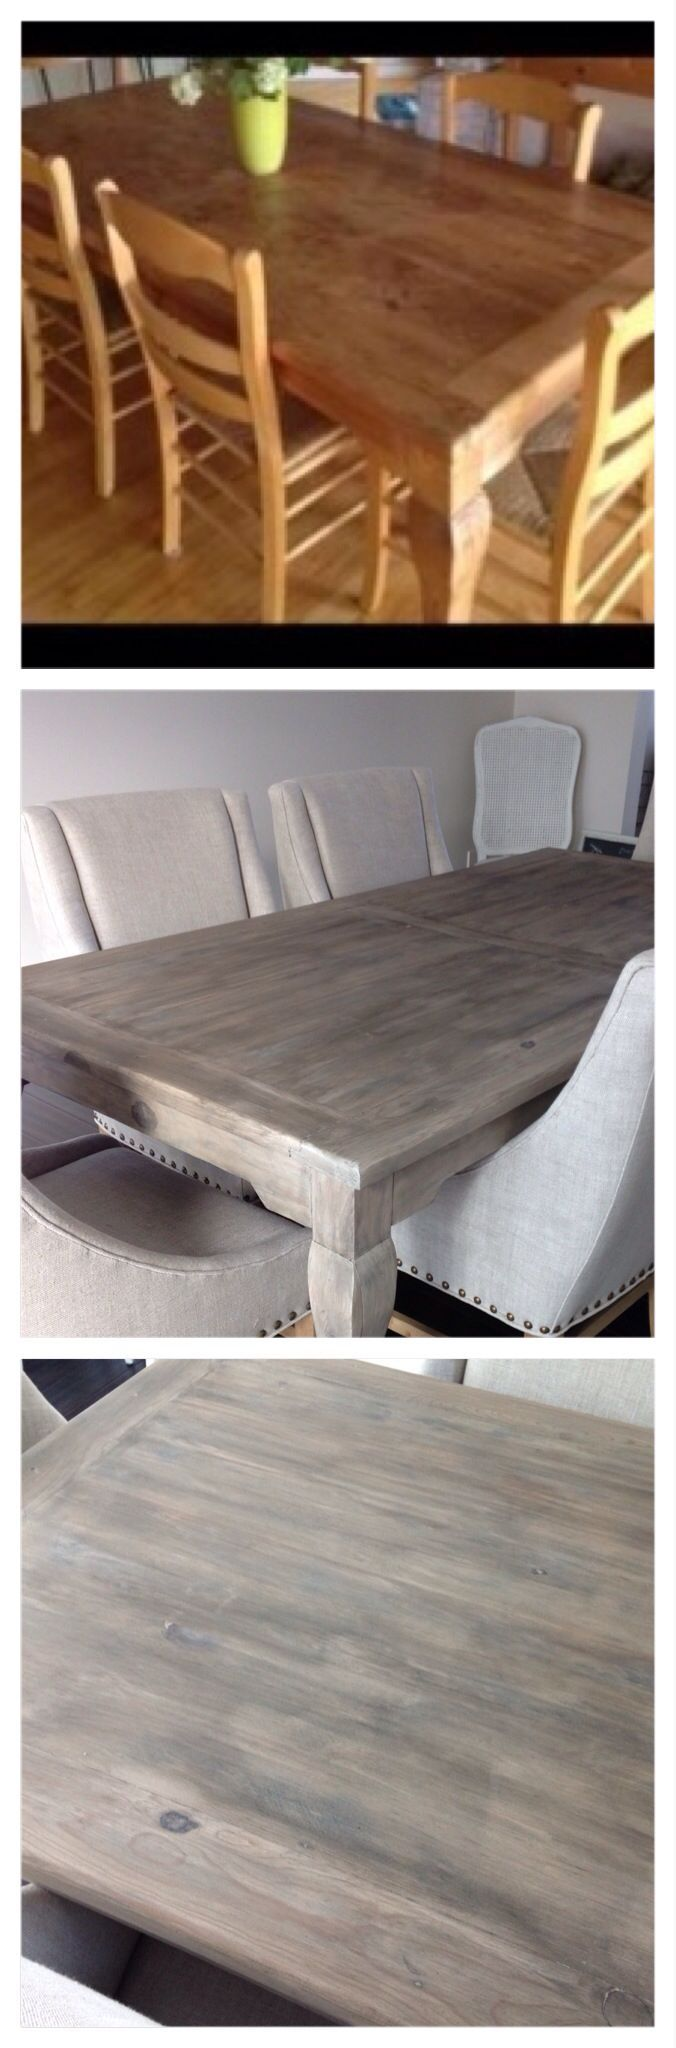 Stripping Dining Room Table 1000 Ideas About Gray Dining Tables On Pinterest Dining Tables